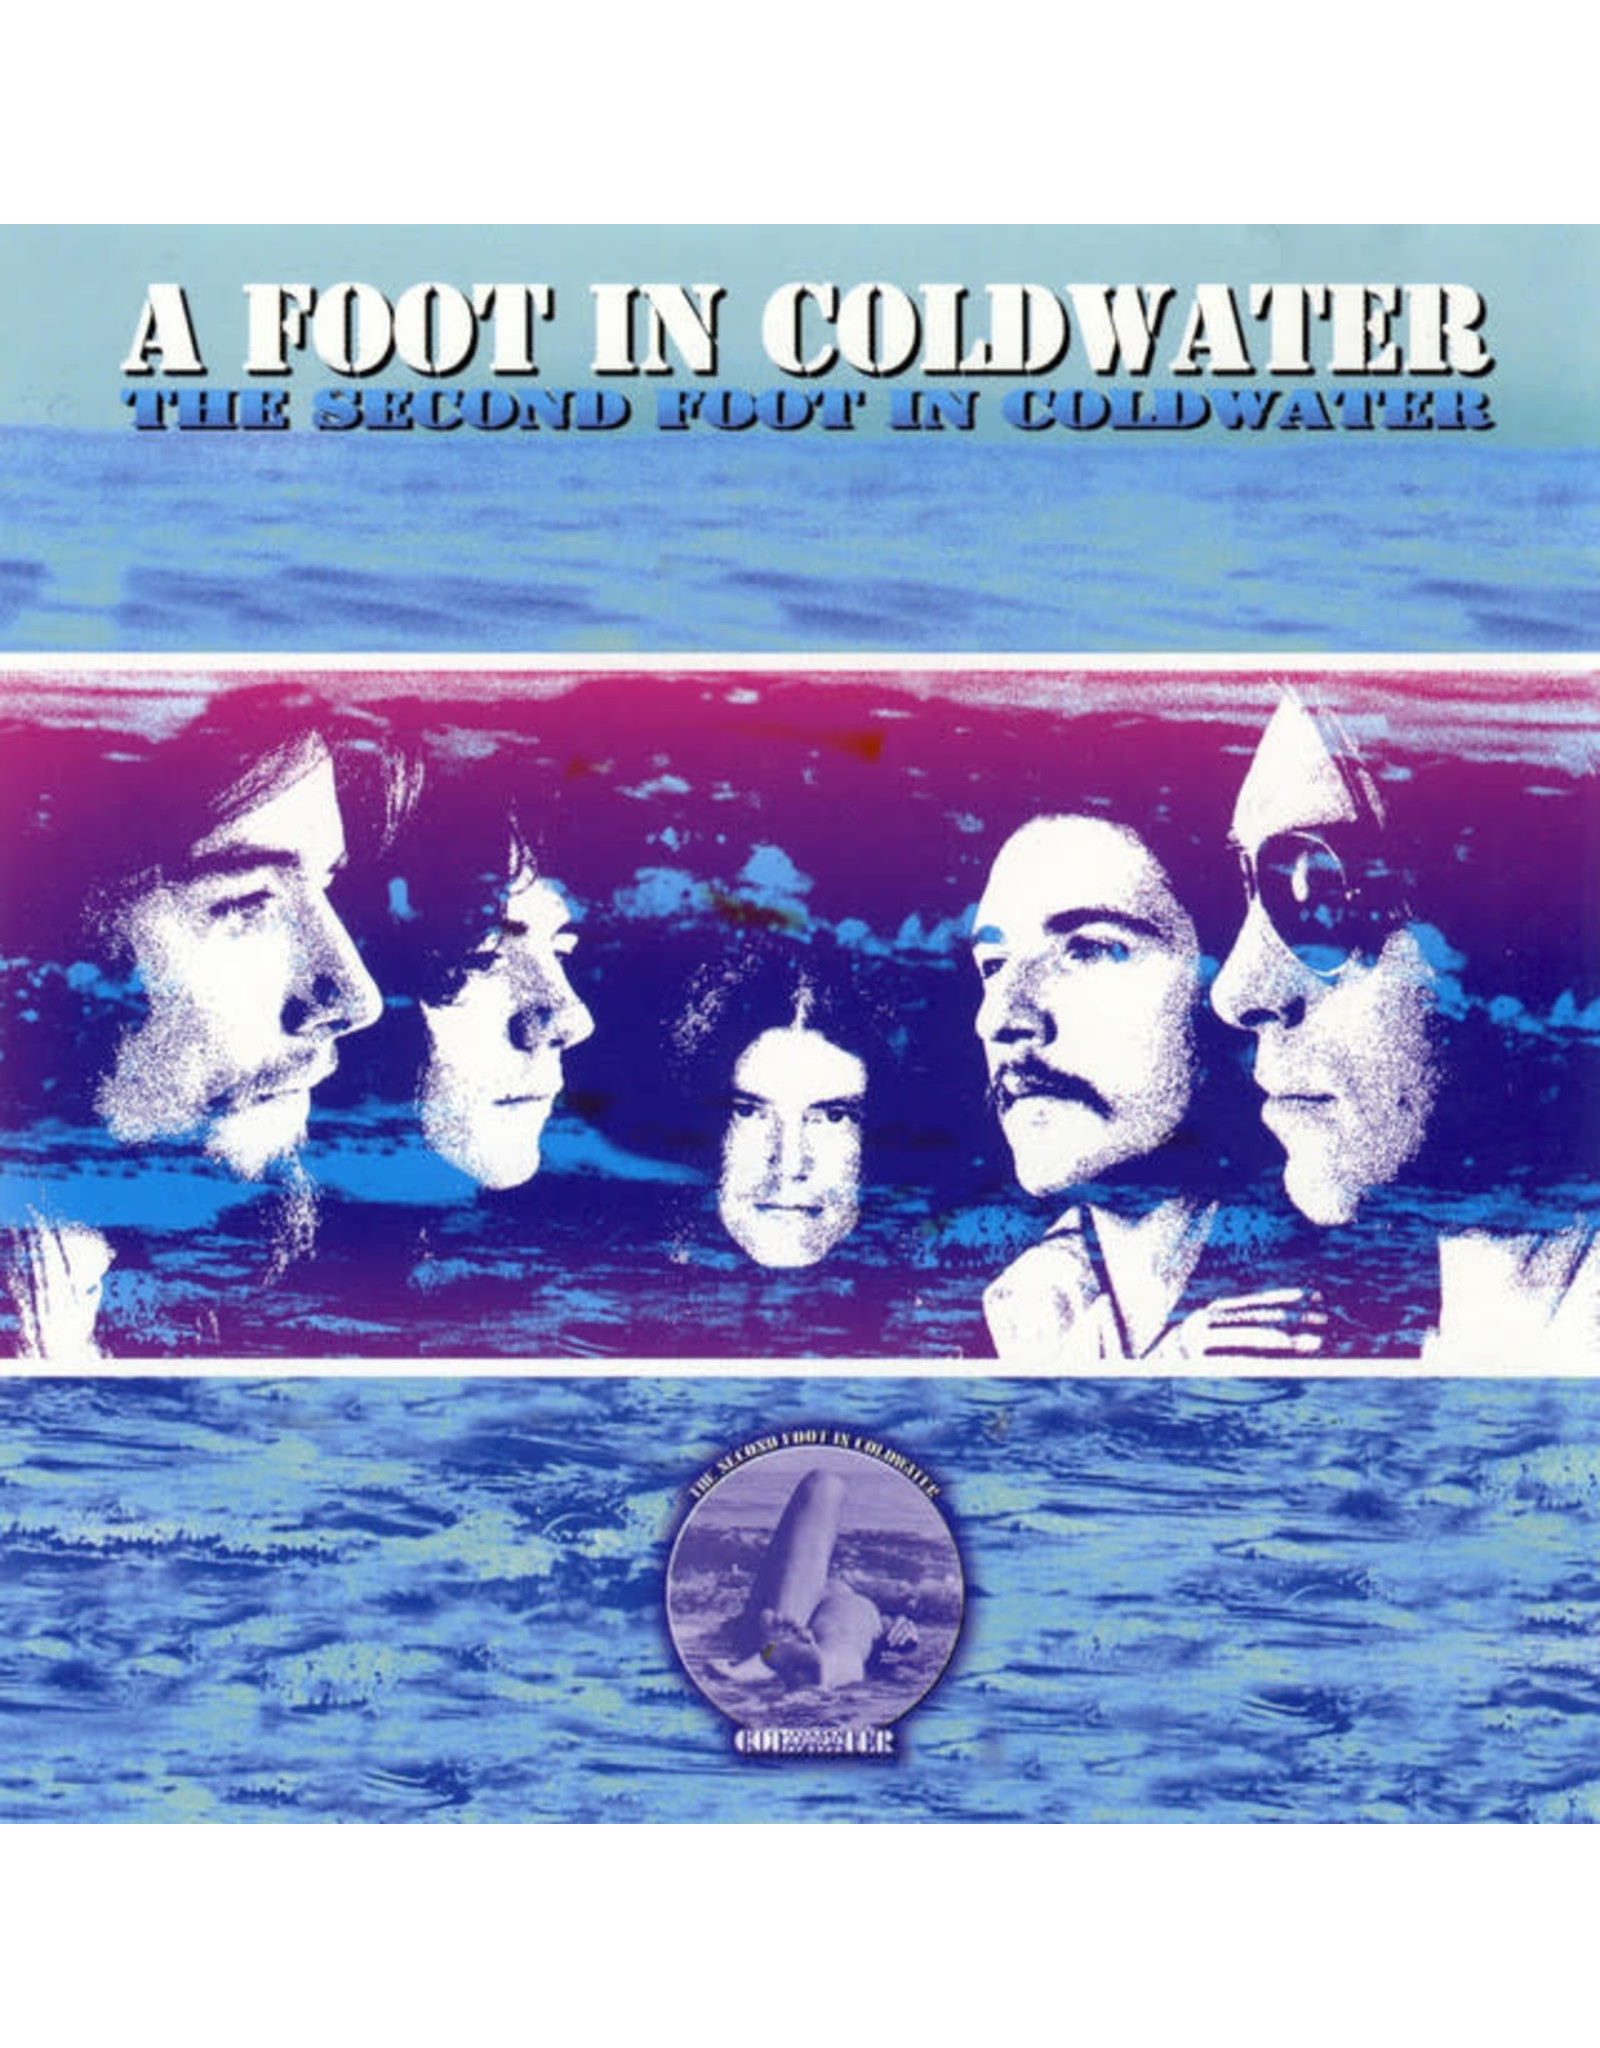 Compact Disc A Foot In Coldwater - Second Foot In Coldwater